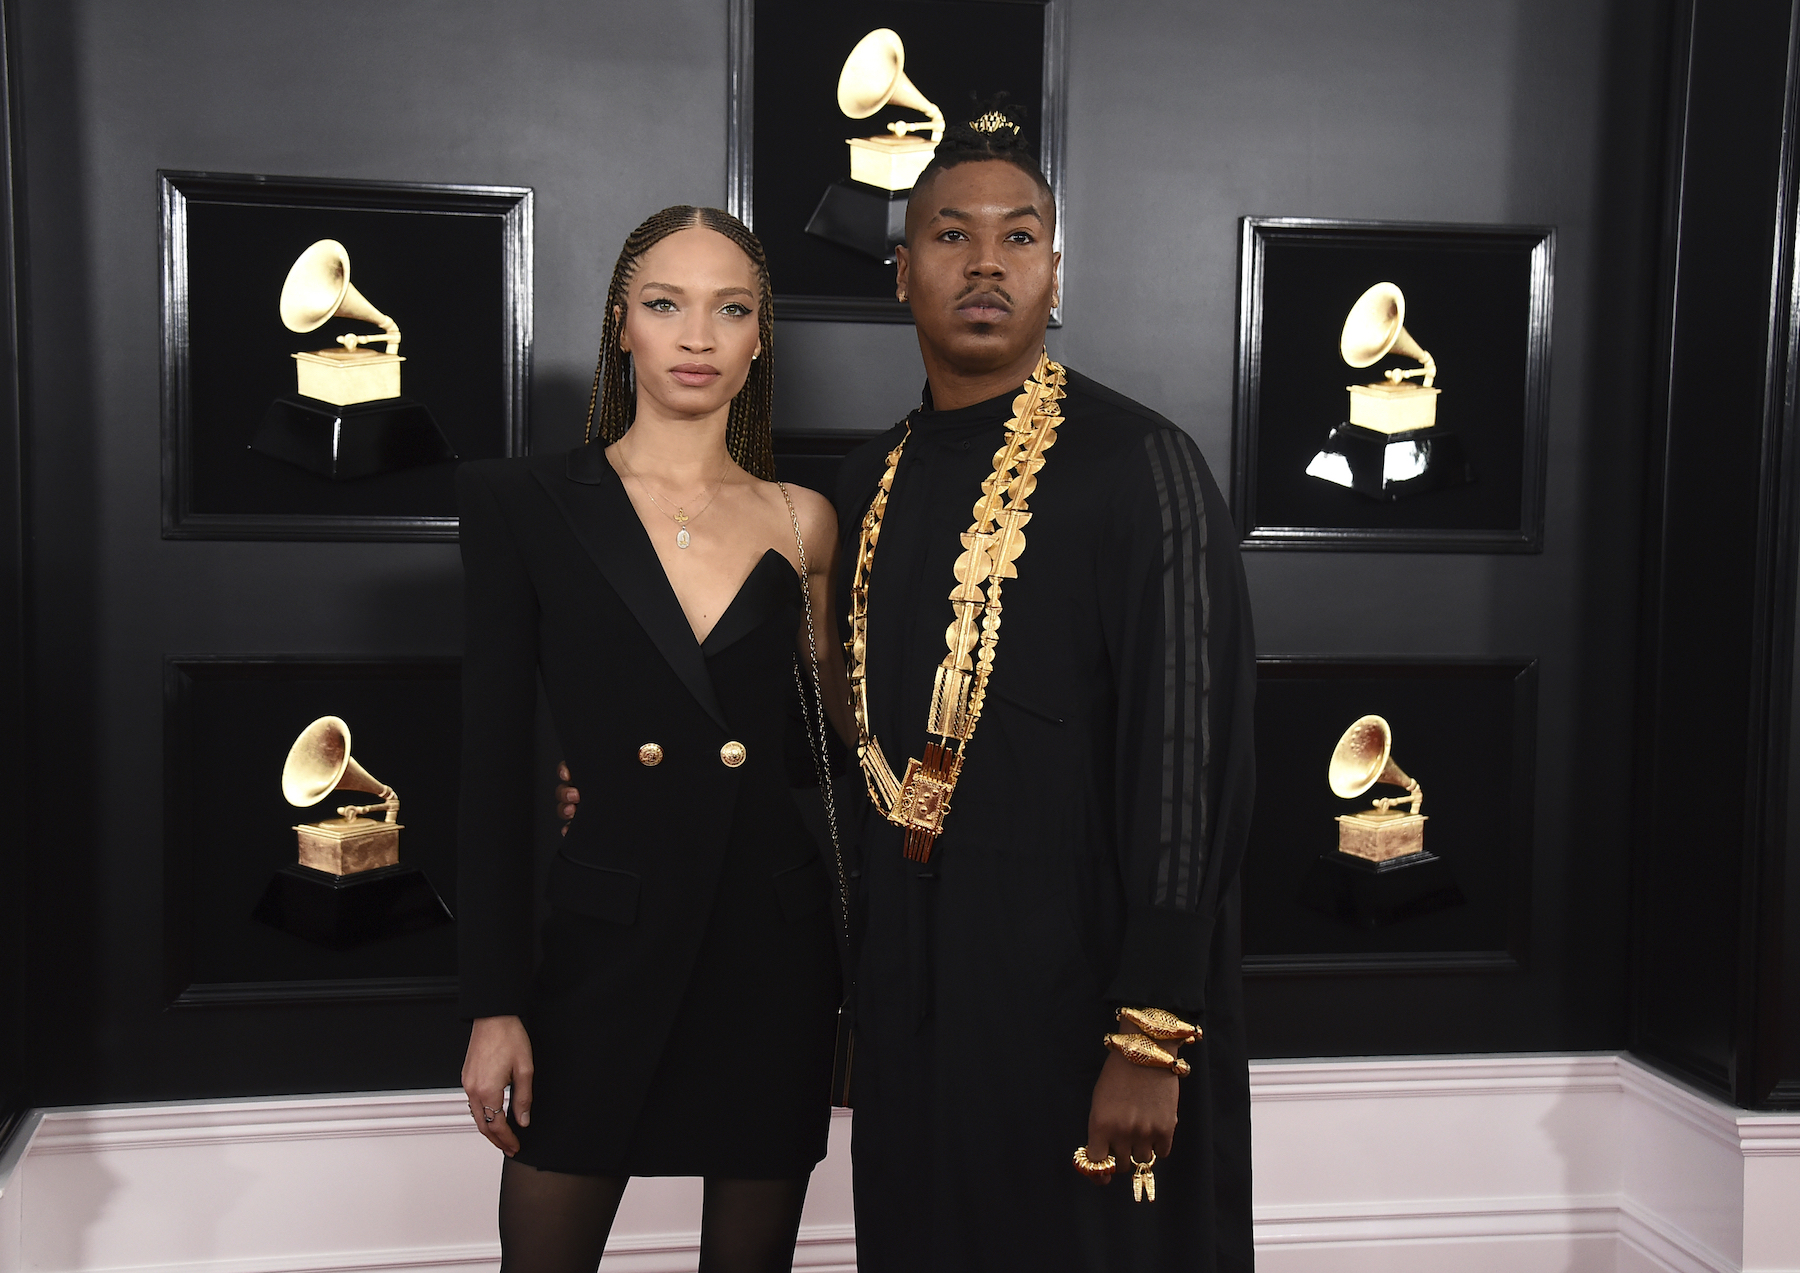 <div class='meta'><div class='origin-logo' data-origin='AP'></div><span class='caption-text' data-credit='Jordan Strauss/Invision/AP'>Devan Mayfield, left, and Christian Scott aTunde Adjuah arrive at the 61st annual Grammy Awards at the Staples Center on Sunday, Feb. 10, 2019, in Los Angeles.</span></div>